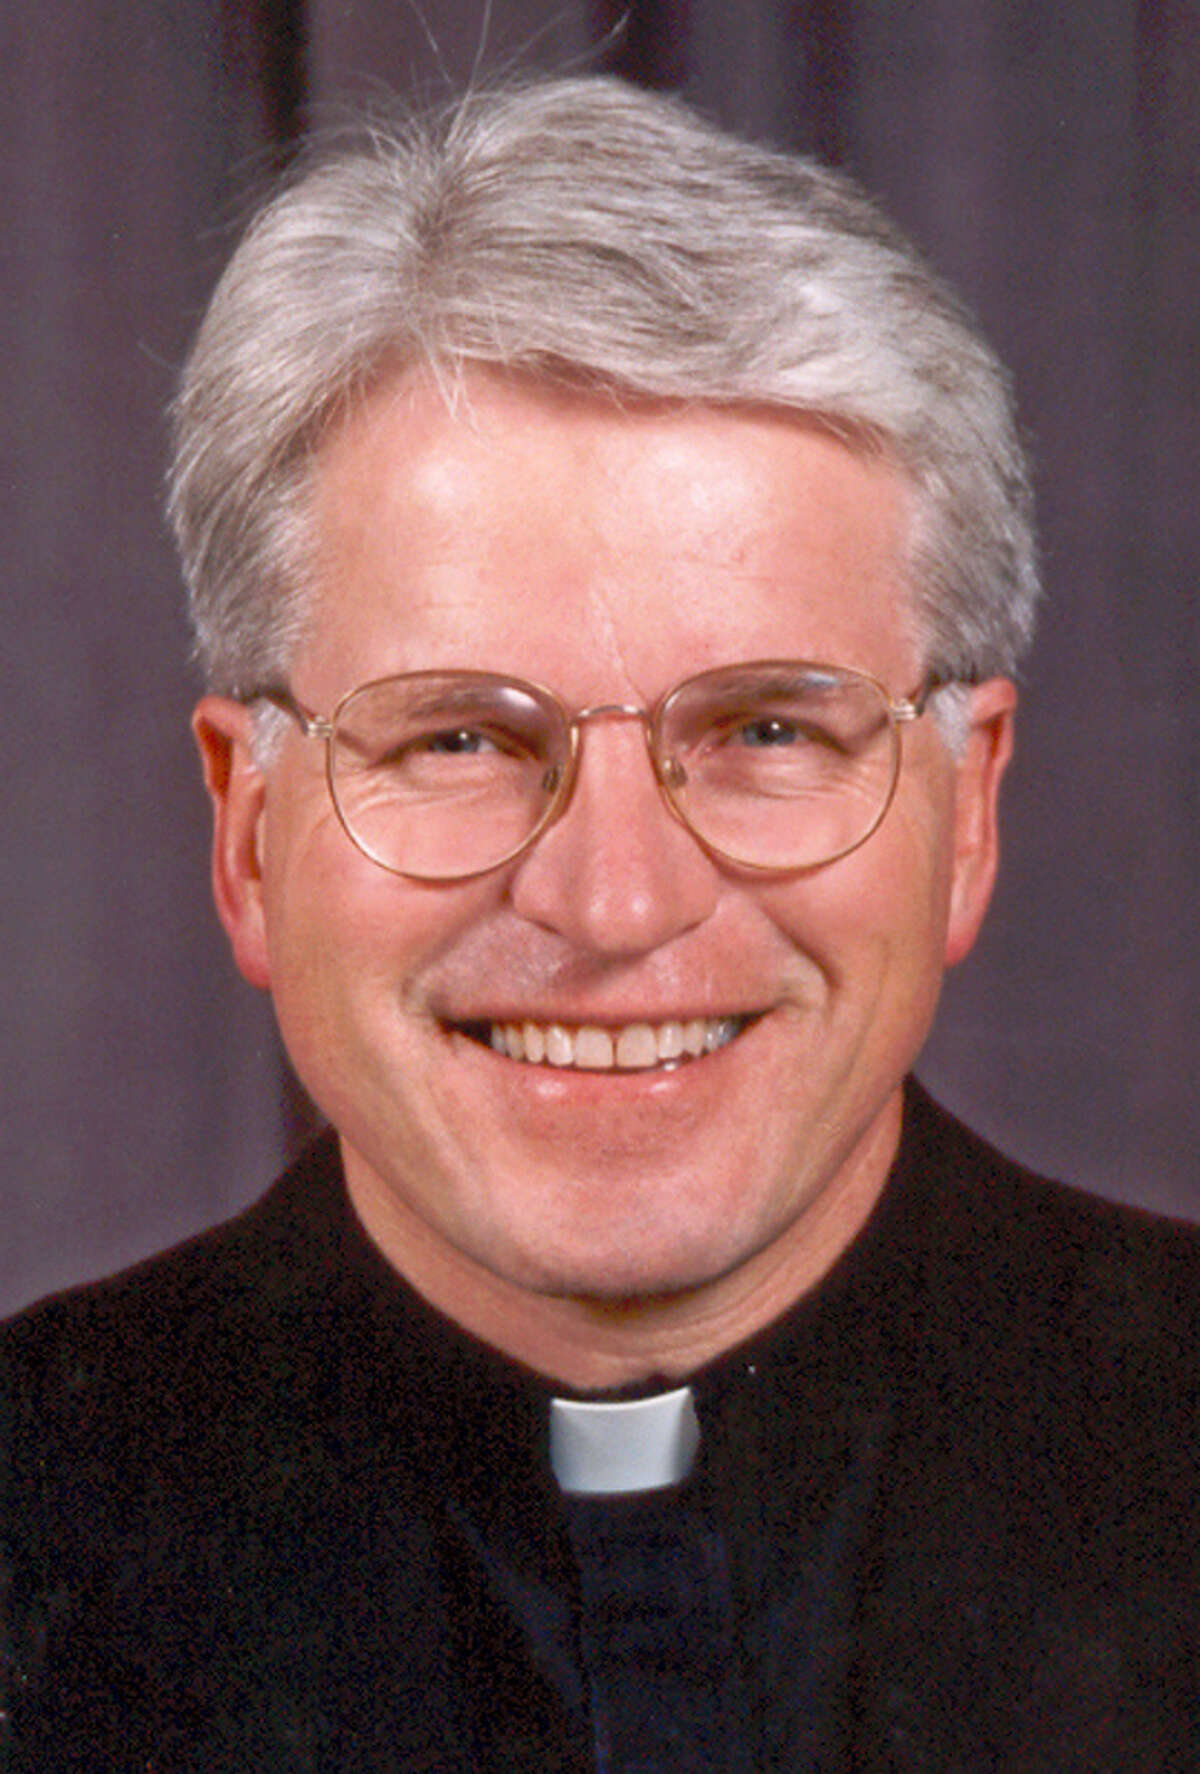 """This undated photo provided by the Diocese of Rockville Centre shows Monsignor Thomas J. Hartman, a Roman Catholic priest who gained fame as half of an interfaith """"God Squad"""" duo on television, died Tuesday, Feb. 16, 2016, in a Uniondale, N.Y. nursing home. He was 69 years old."""